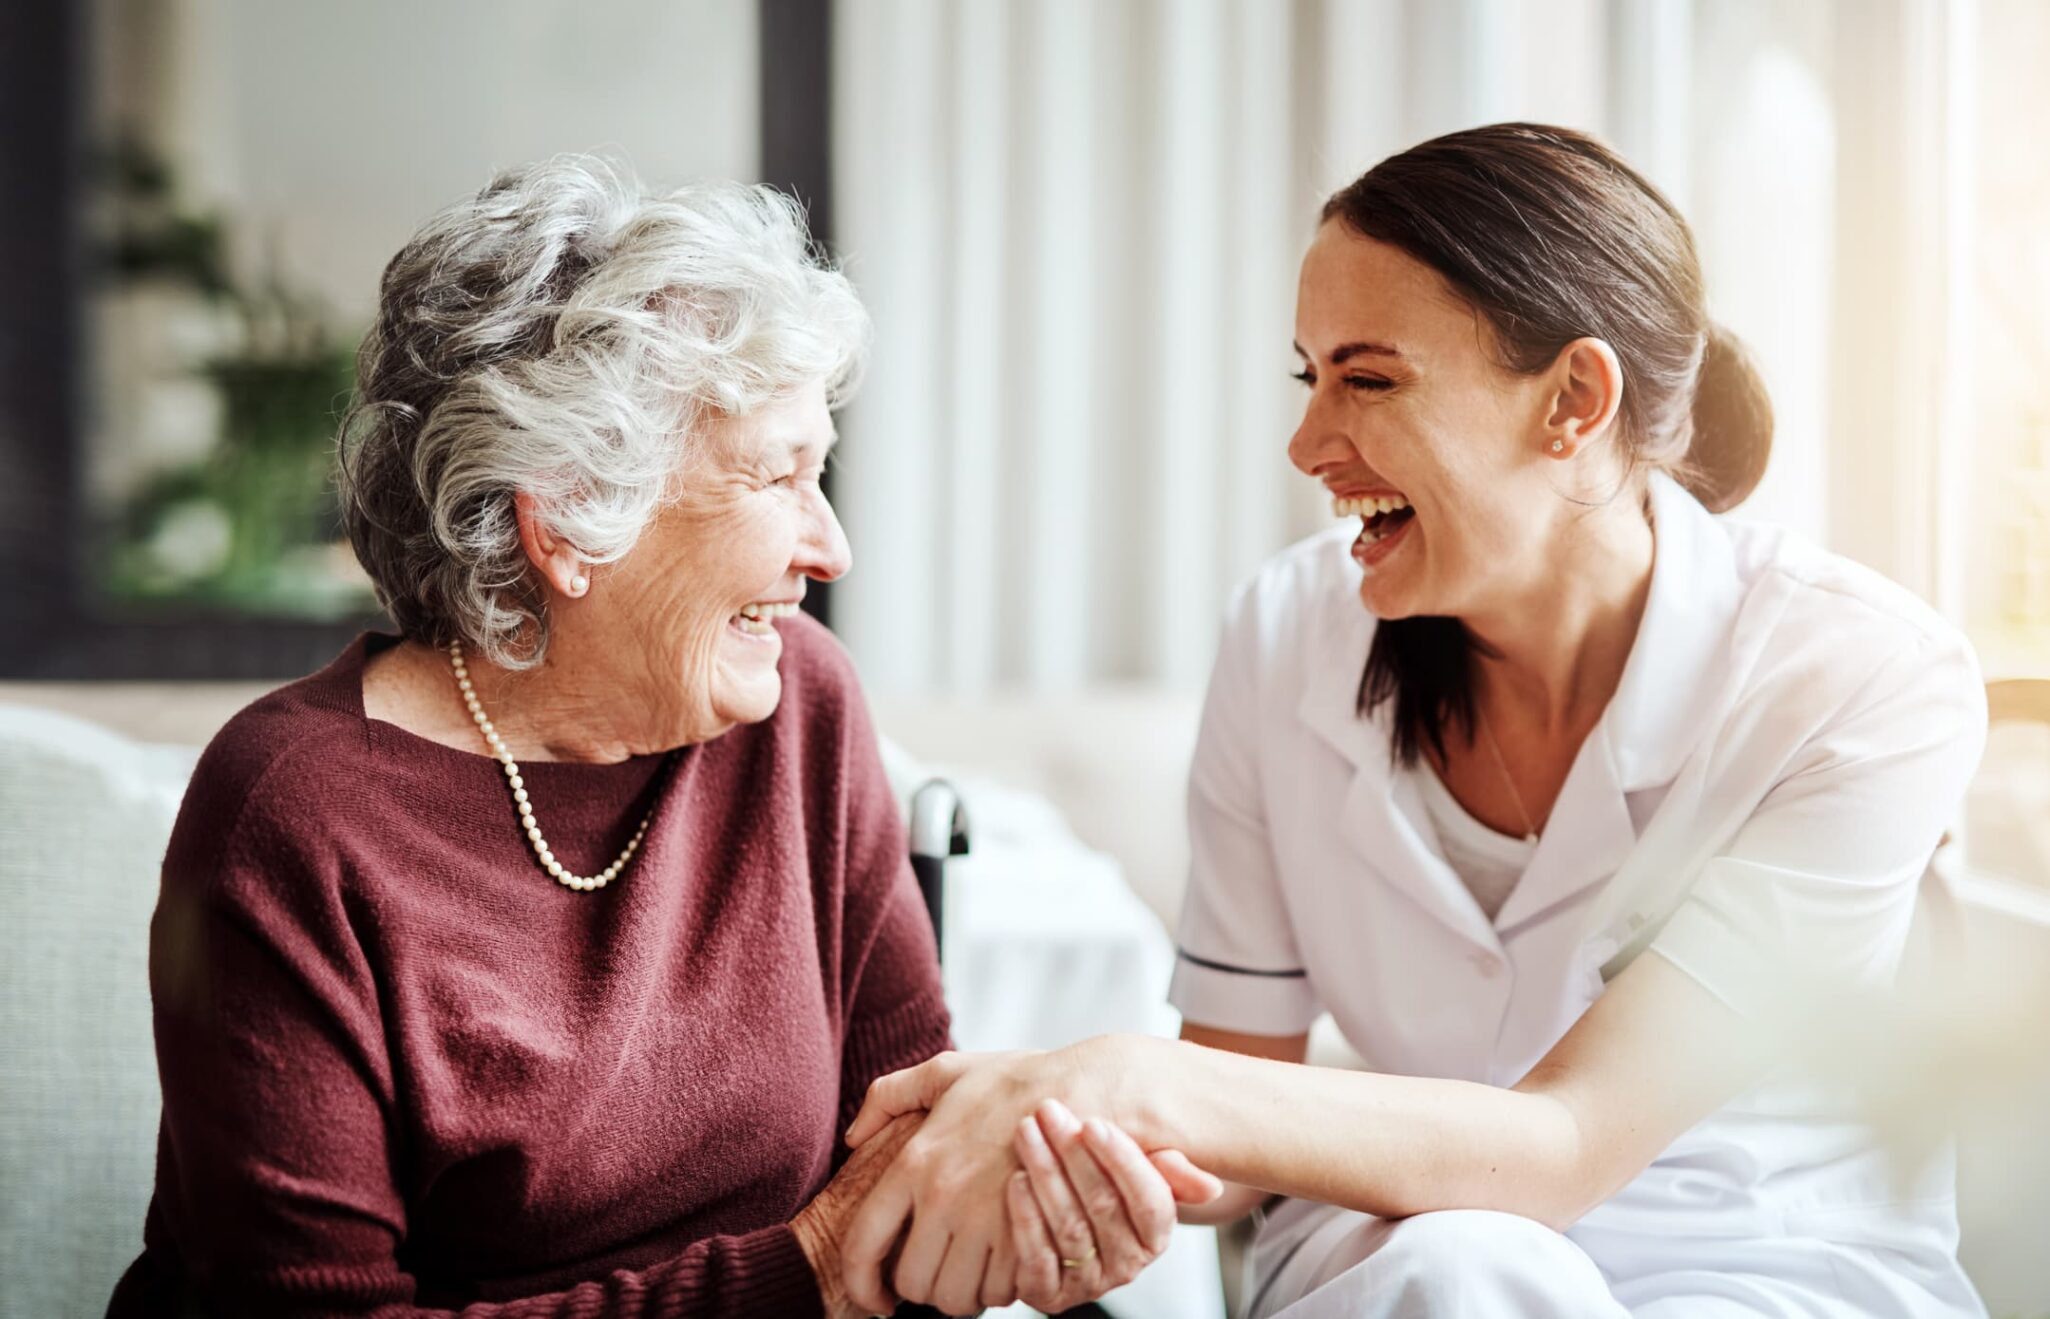 Older woman sitting on couch and smiling with her female caregiver.